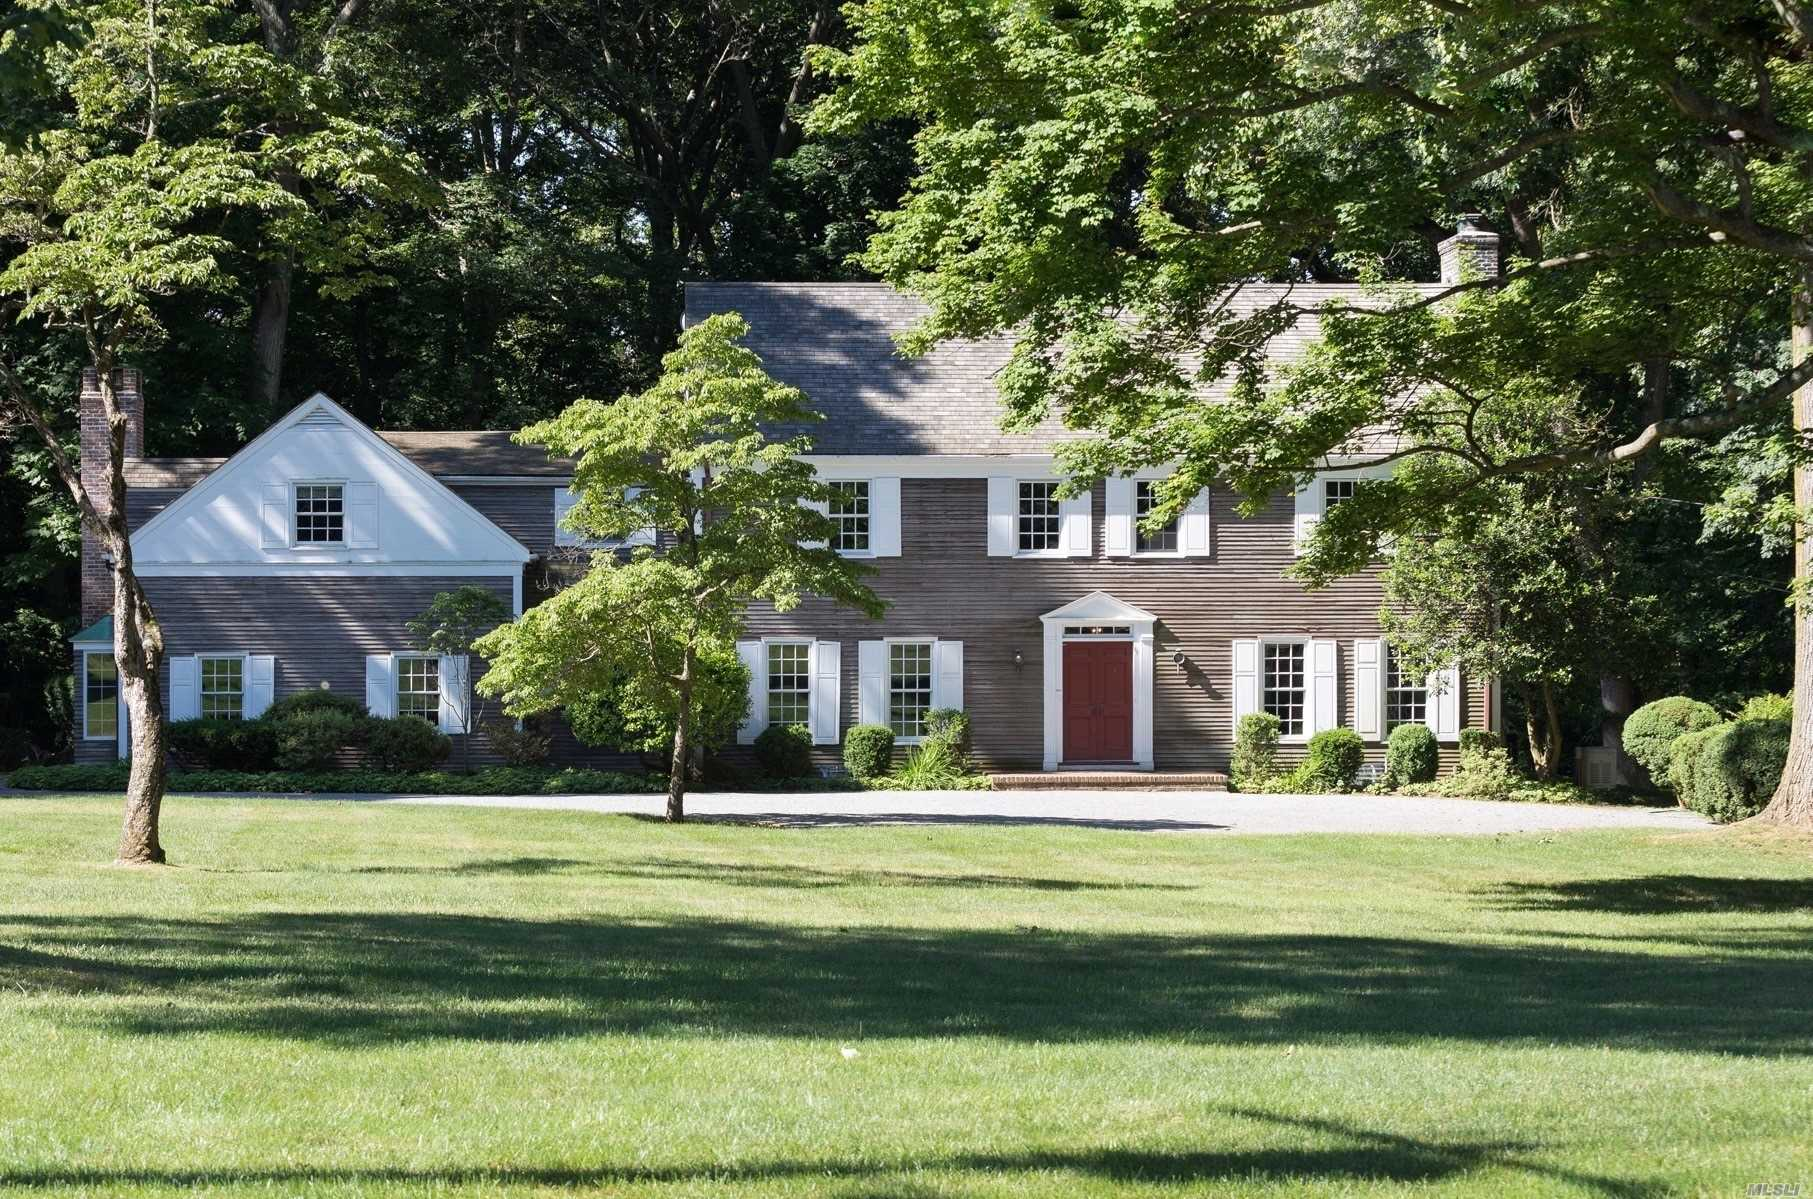 Exceptional 6-Bedroom, Custom Built Colonial On 3.5 Flat, Verdant Acres. Beautiful, Park-Like Setting With Detached 3 Bay Garage. Cedar Roof, Spacious, Sun-Drenched Rooms And 3 Fireplaces. New Systems, Generator And More. Jennings Beach Association With Sandy Beach And Mooring (Dues Required). Cold Spring Harbor Sd#2, Lloyd Harbor Park, Tennis & Camp (Dues Required).